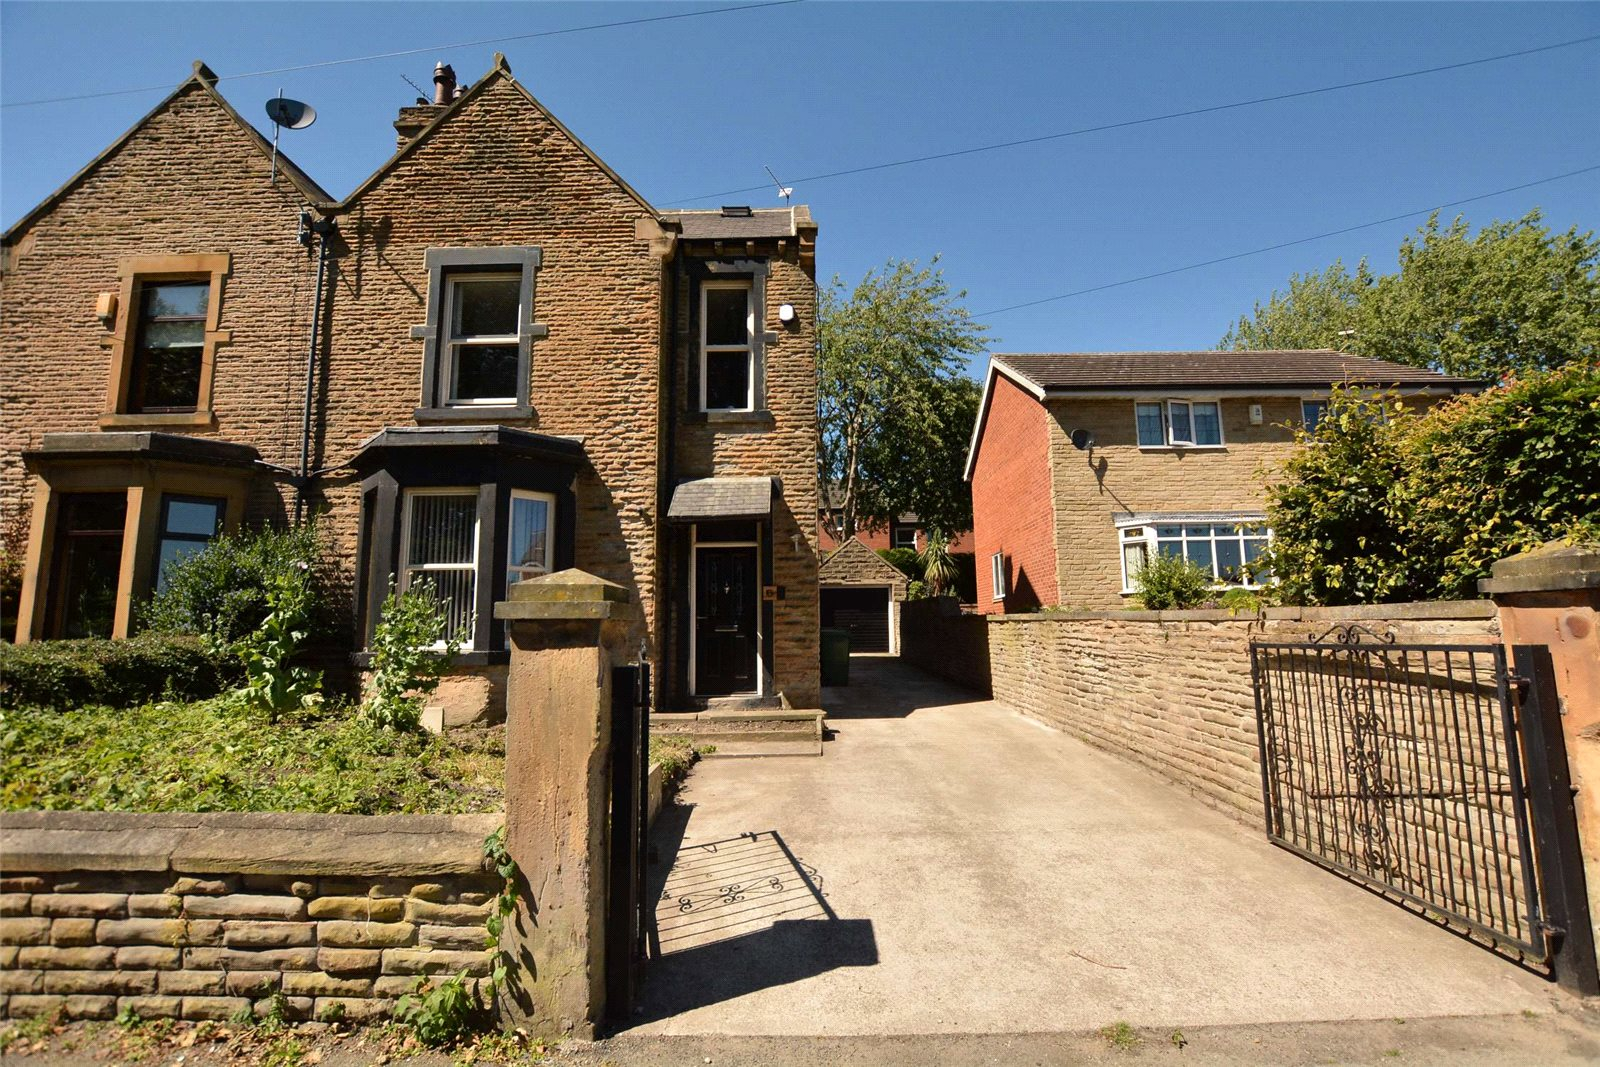 property for sale in Rothwell, exterior semi detached